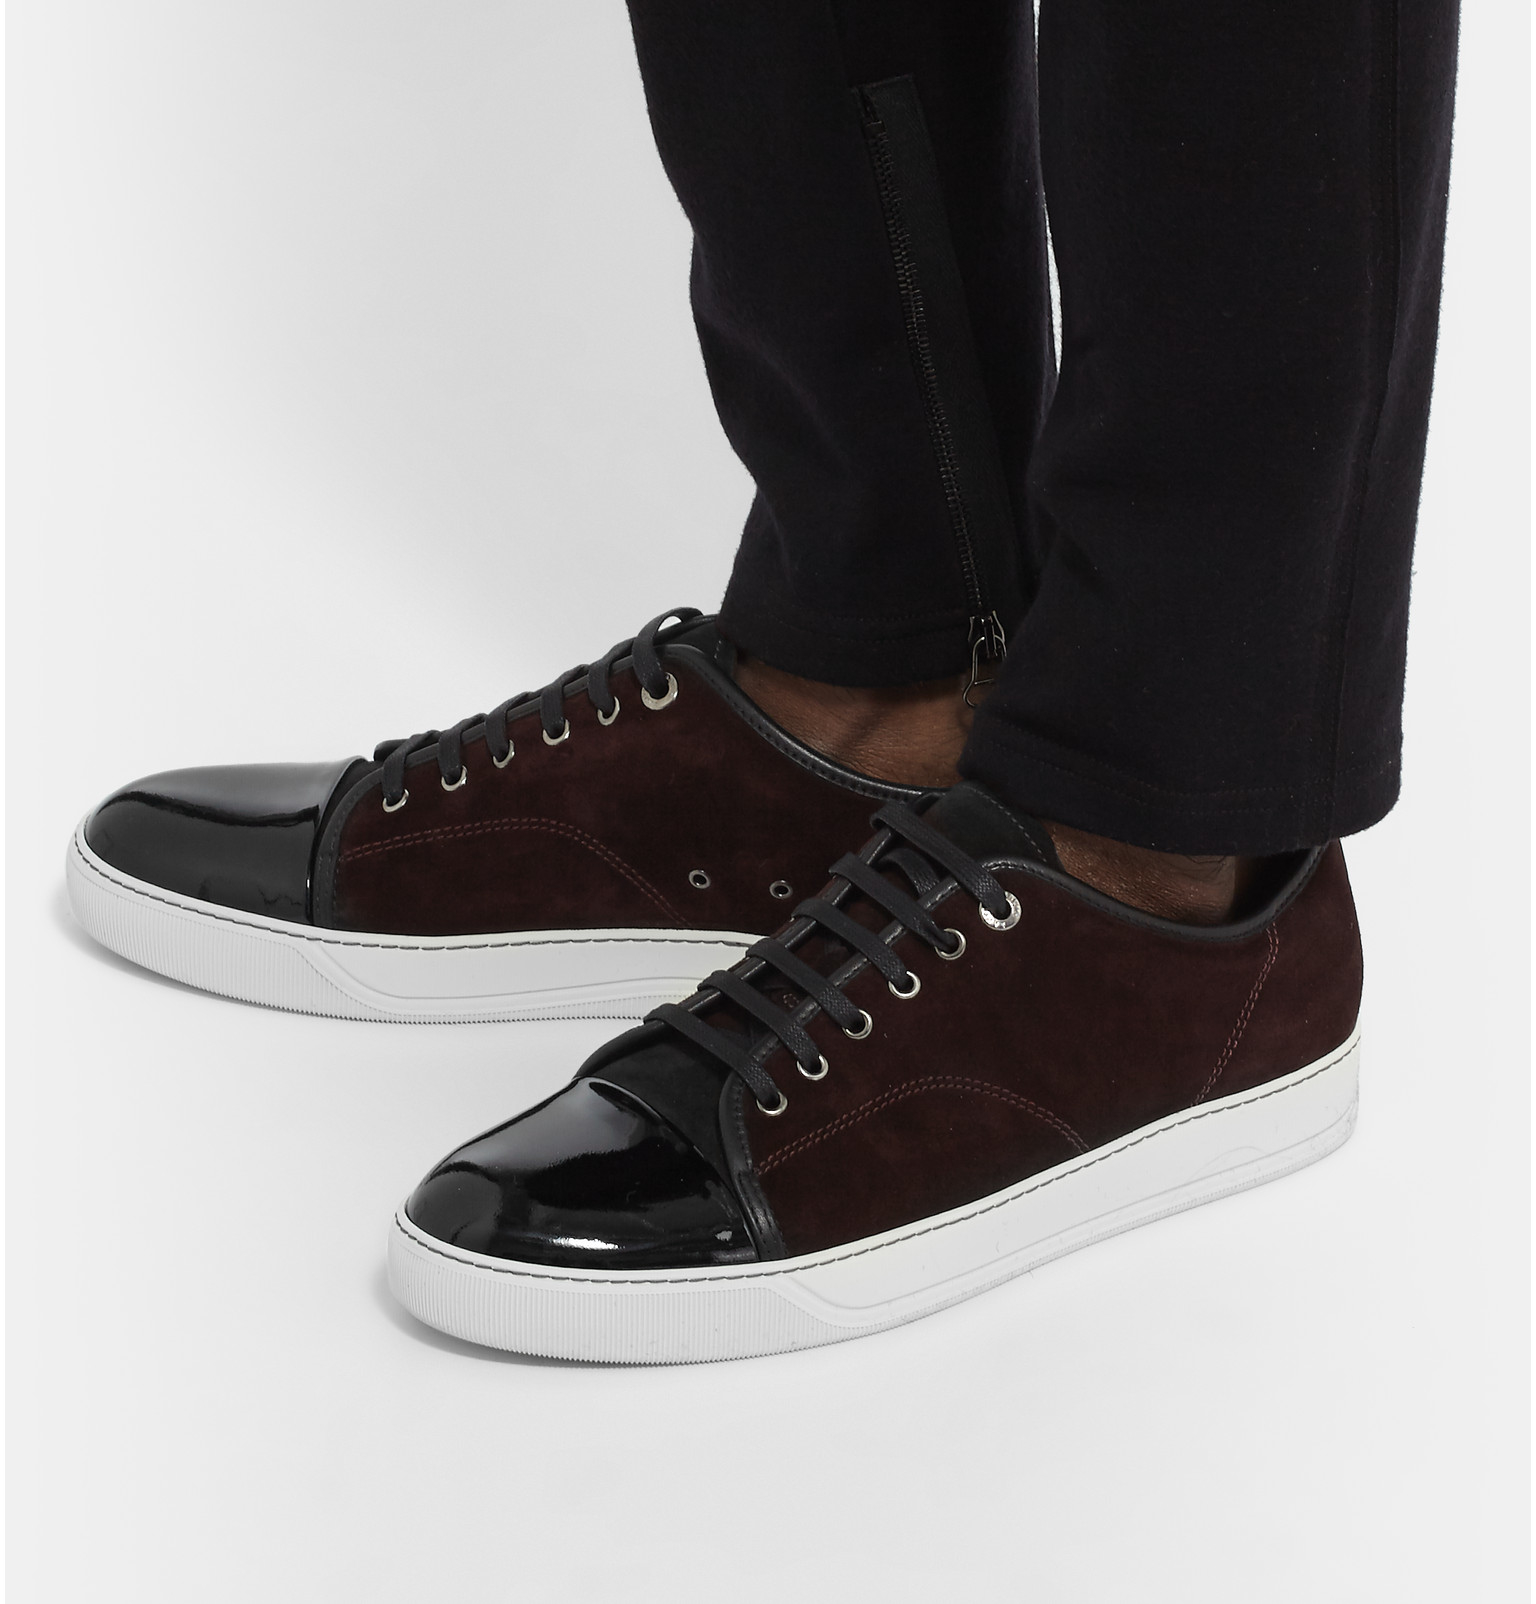 Get Authentic Online Lanvin Sneakers with patent leather toe cap Buy Cheap Fashion Style In China Cheap Price Cheap Sale Footlocker Huge Surprise iMEIVHtrp